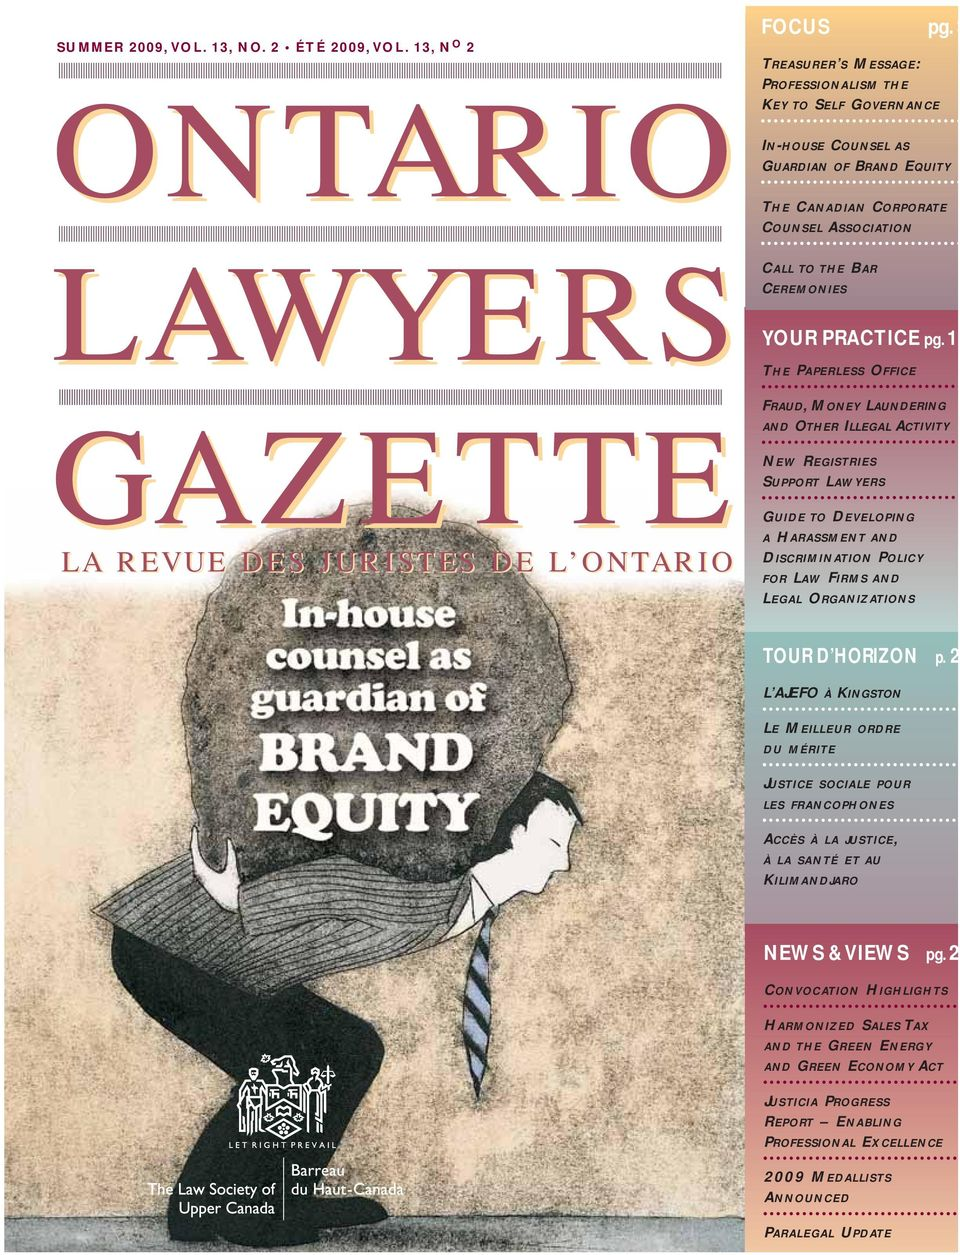 1 THE PAPERLESS OICE RAUD, MONEY LAUNDERING AND OTHER ILLEGAL ACTIVITY NEW REGISTRIES SUPPORT LAWYERS GUIDE TO DEVELOPING A HARASSMENT AND DISCRIMINATION POLICY OR LAW IRMS AND LEGAL ORGANIZATIONS